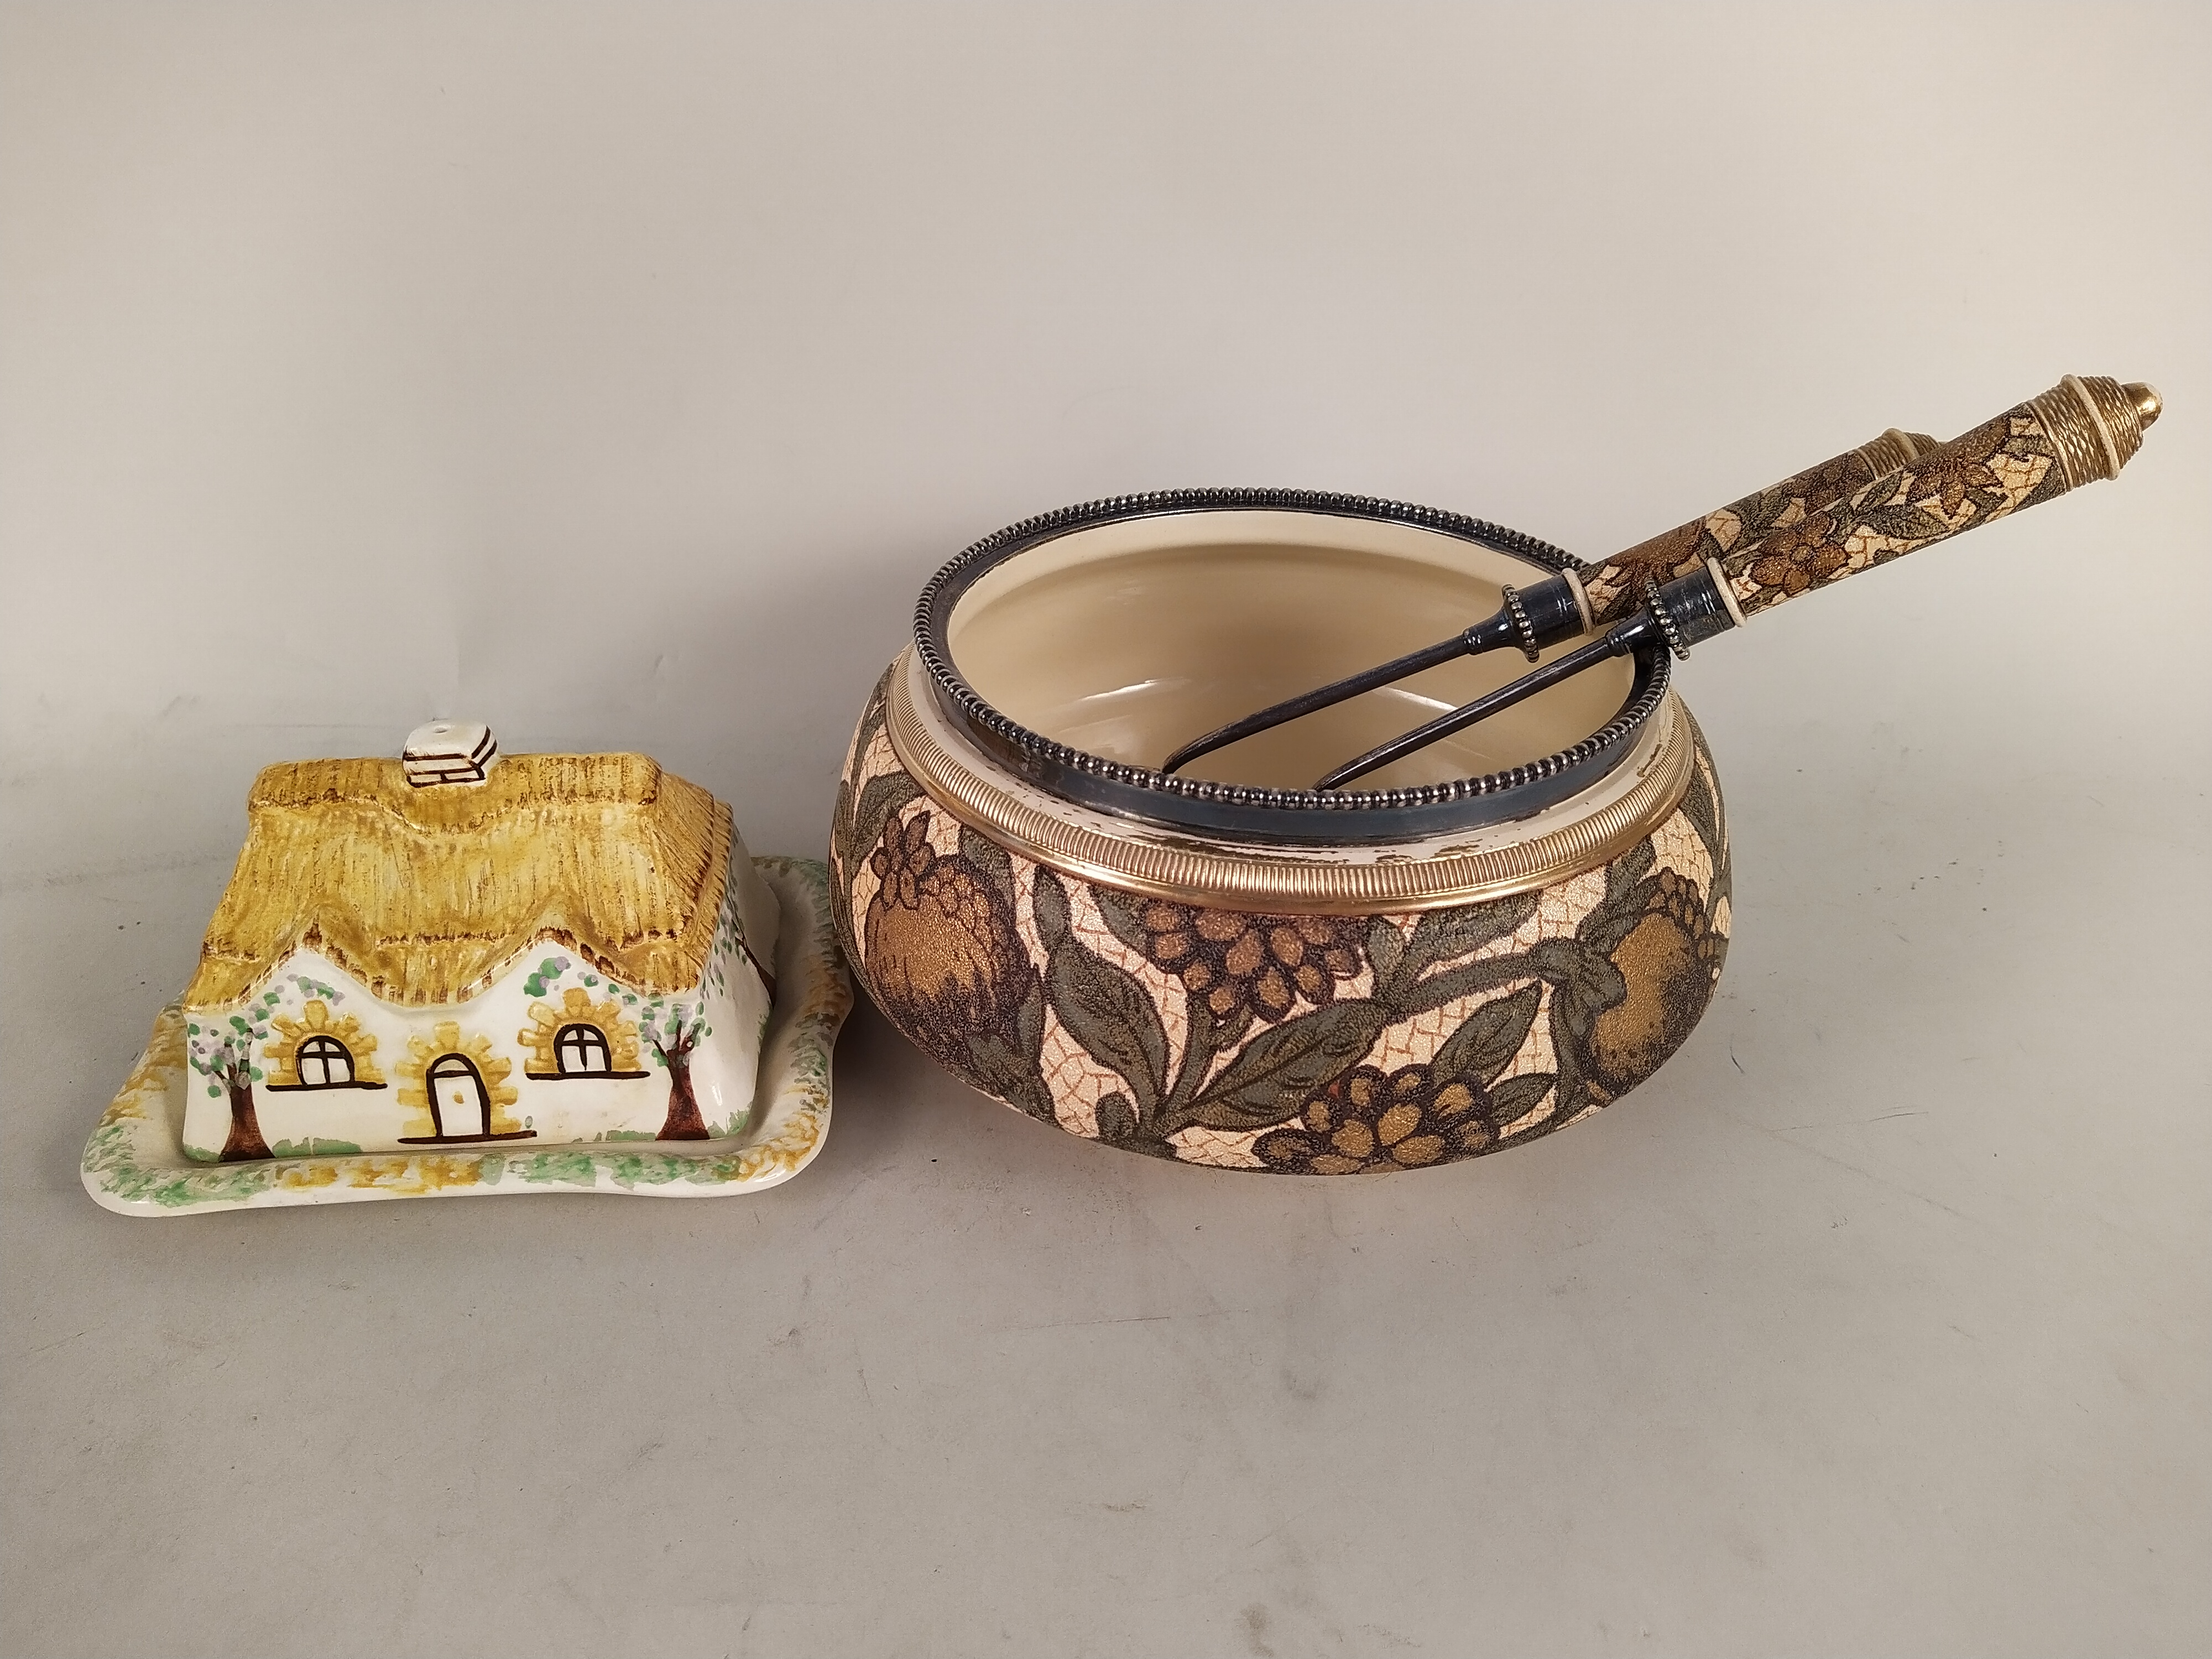 A Doulton style salad dish with matching servers, a Carlton ware lidded sugar, - Image 3 of 3